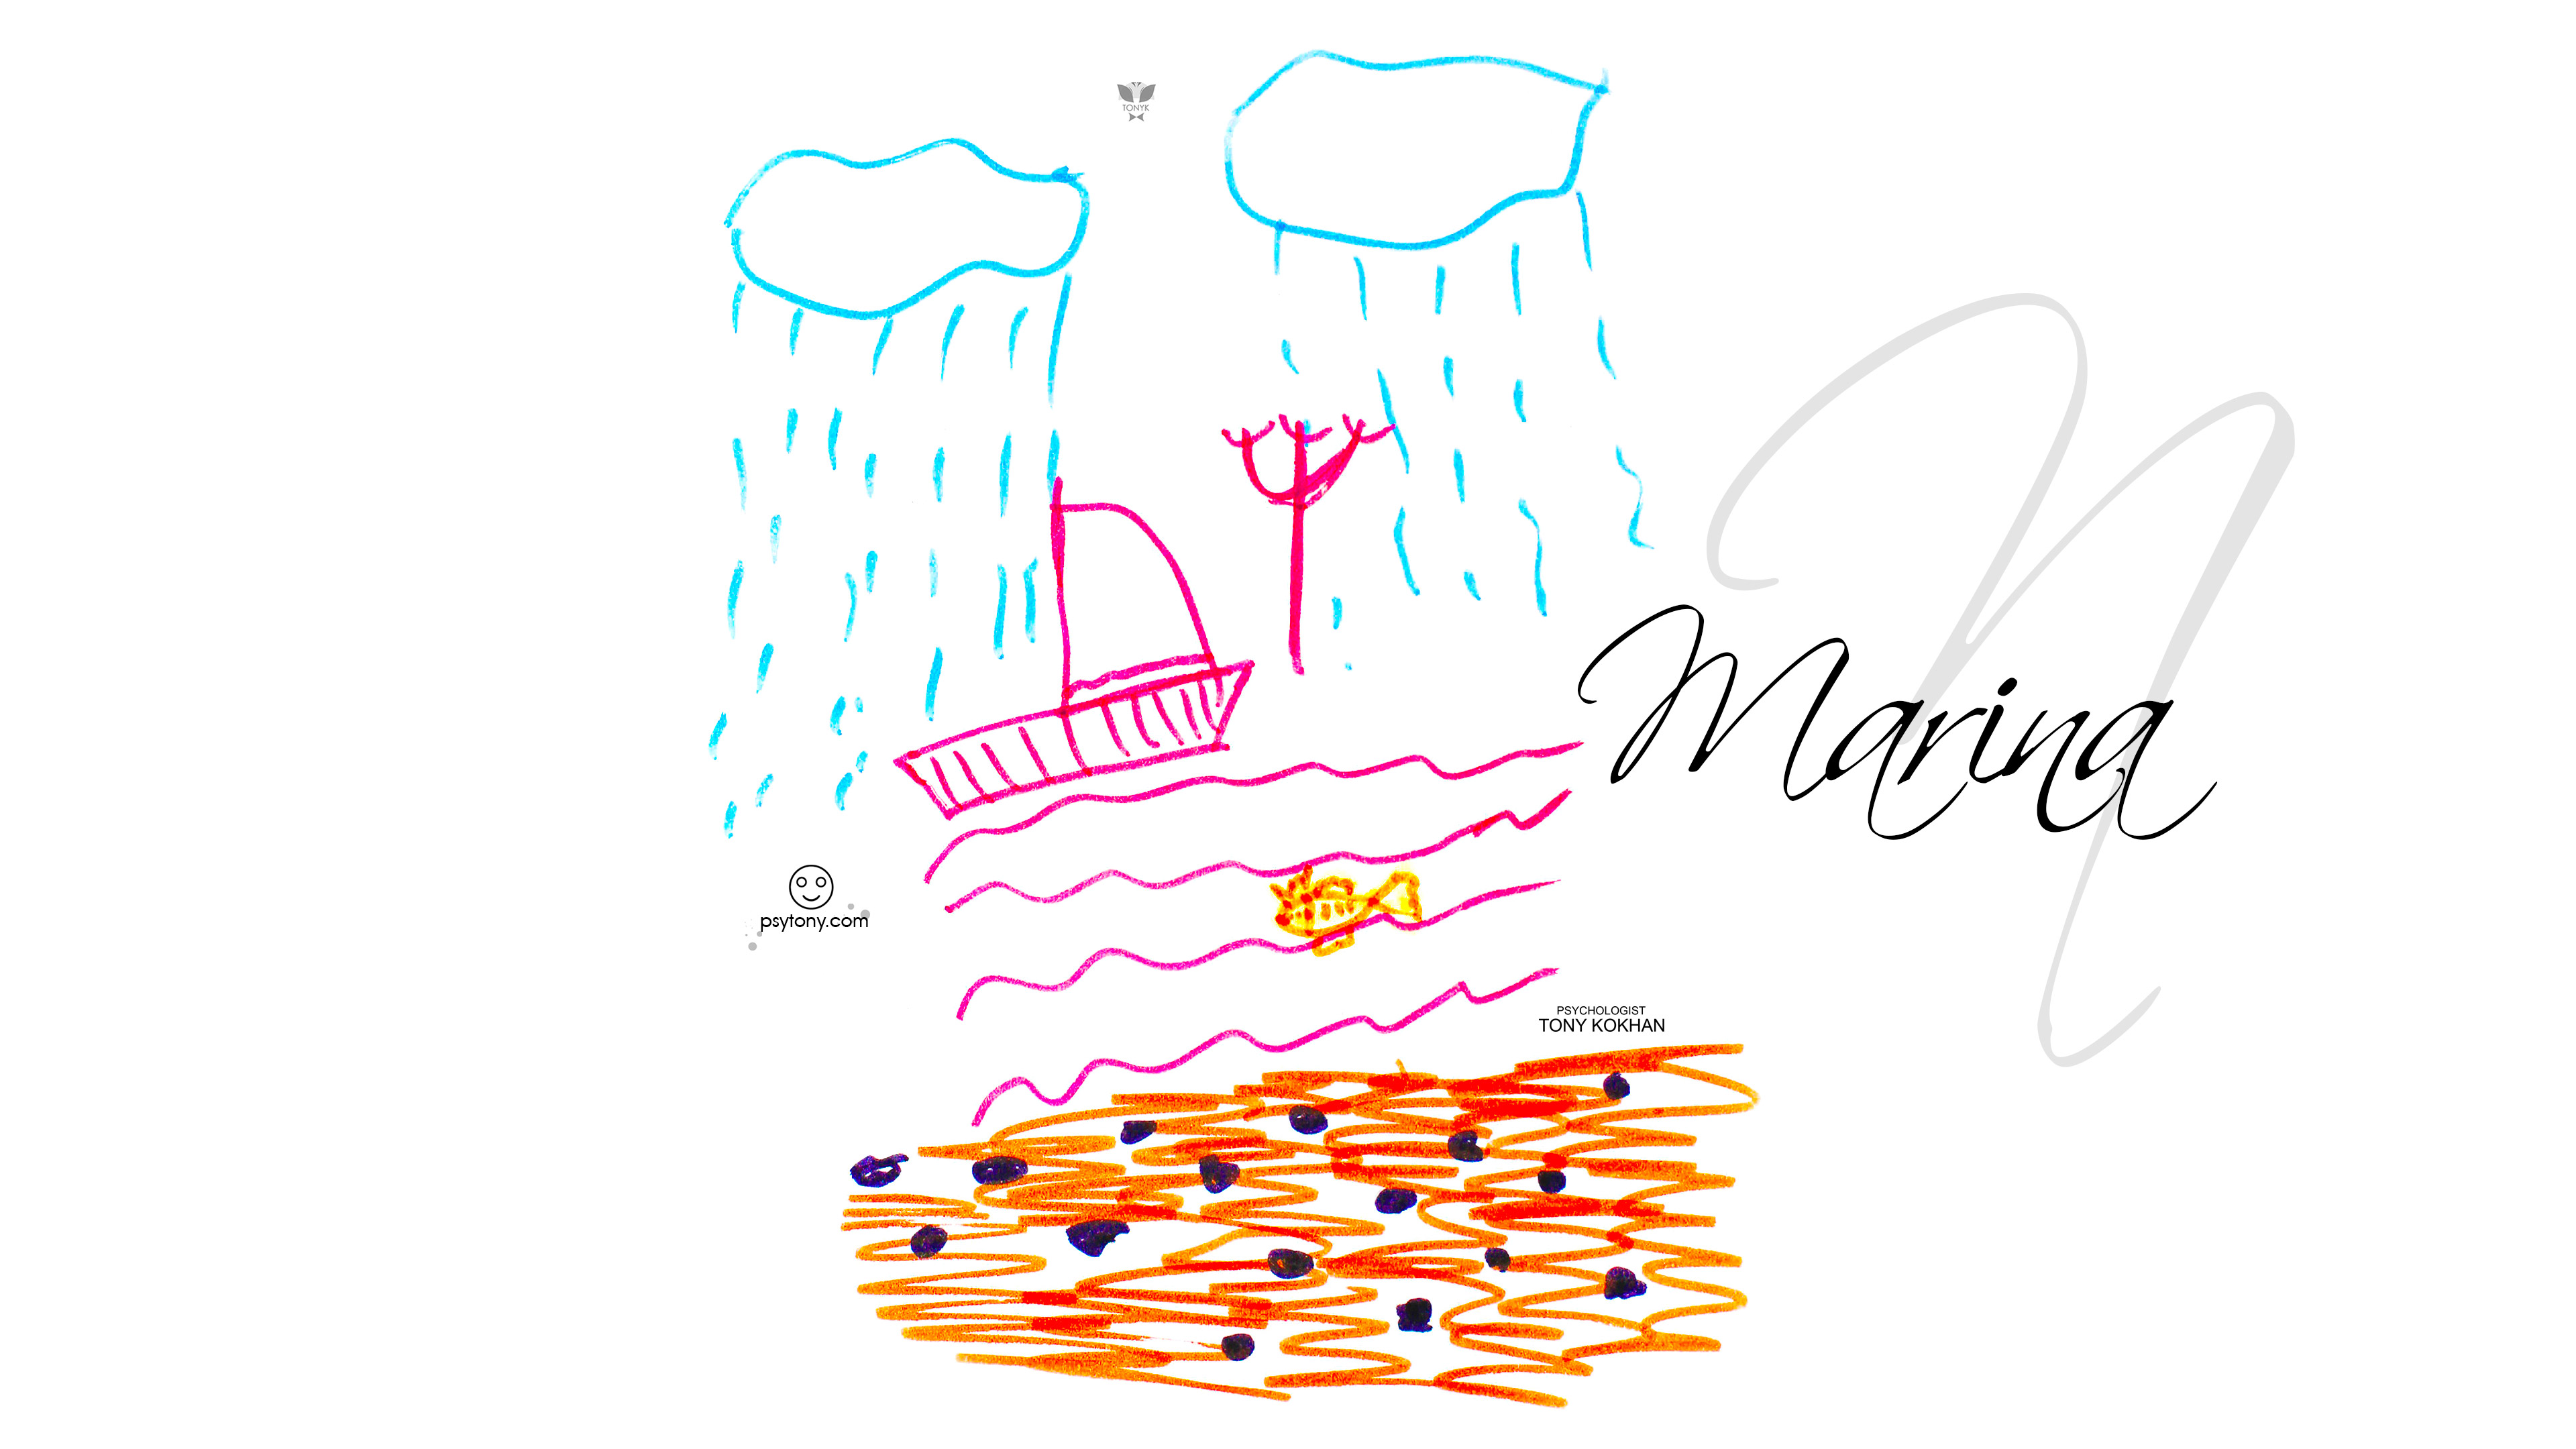 Marina-Soul-Girl-Cry-Face-Sea-Sail-Goldfish-Sand-Art-Picture-Drawing-With-Markers-2019-Multicolors-4K-Wallpapers-by-Psychologist-Tony-Kokhan-www.psytony.com-image